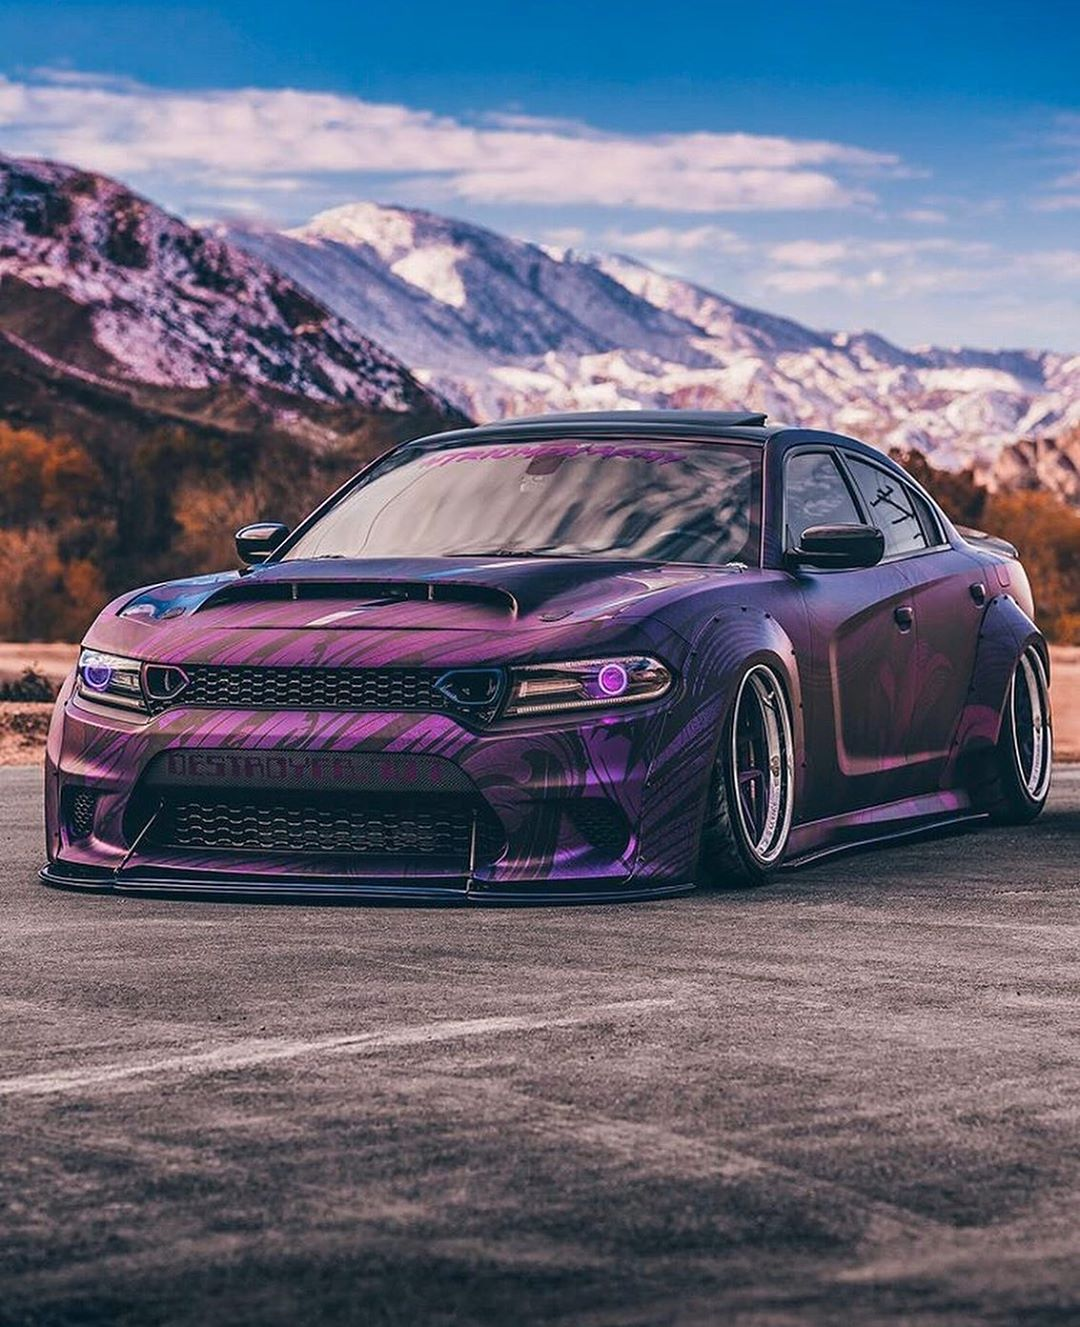 Dodge Charger Hellcat Destroyer 707 Is A Widebody Warrior Autoevolution